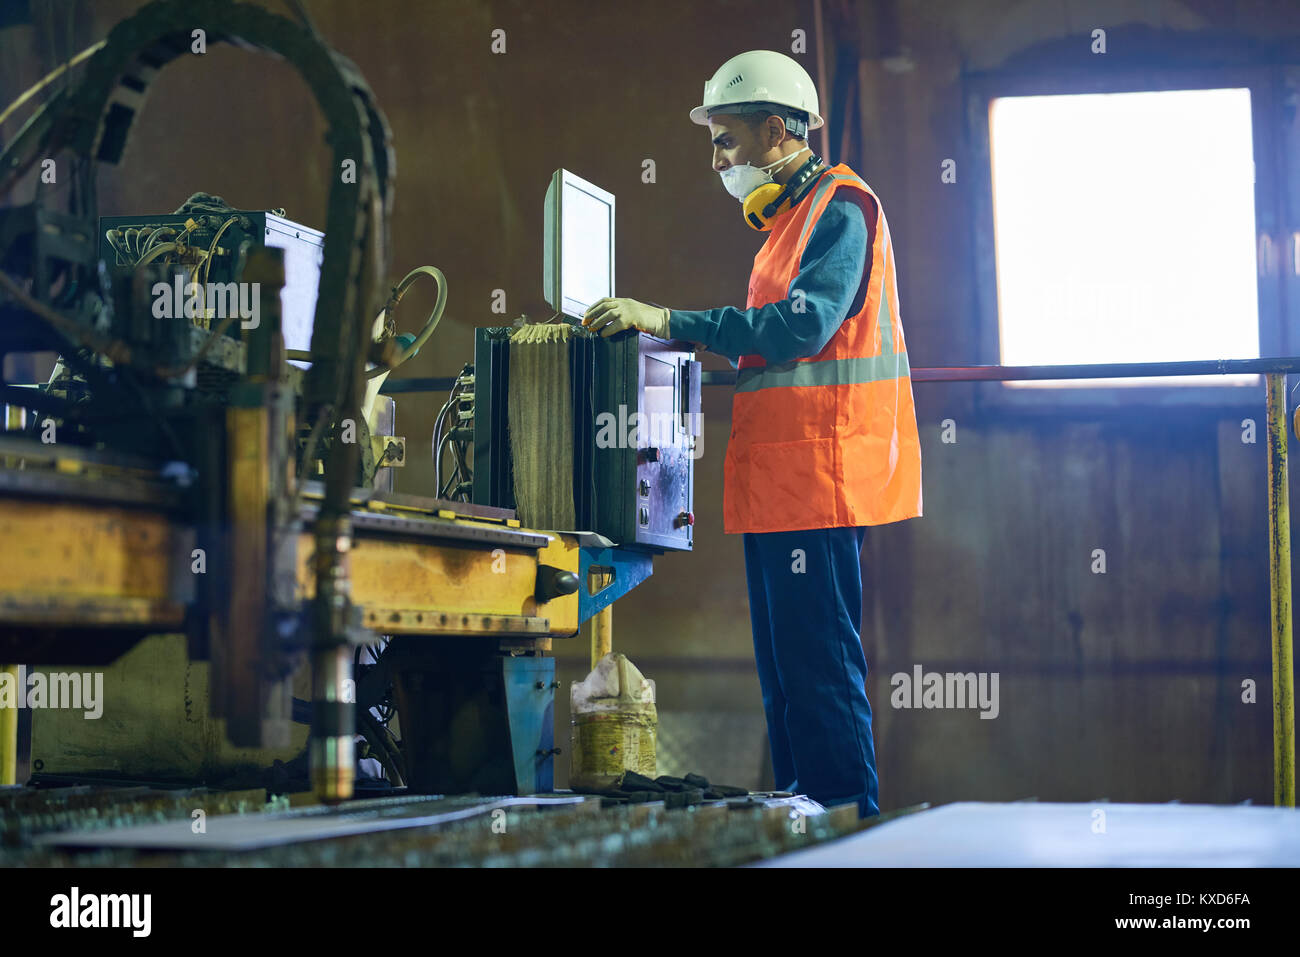 Machine Operator Concentrated on Work - Stock Image